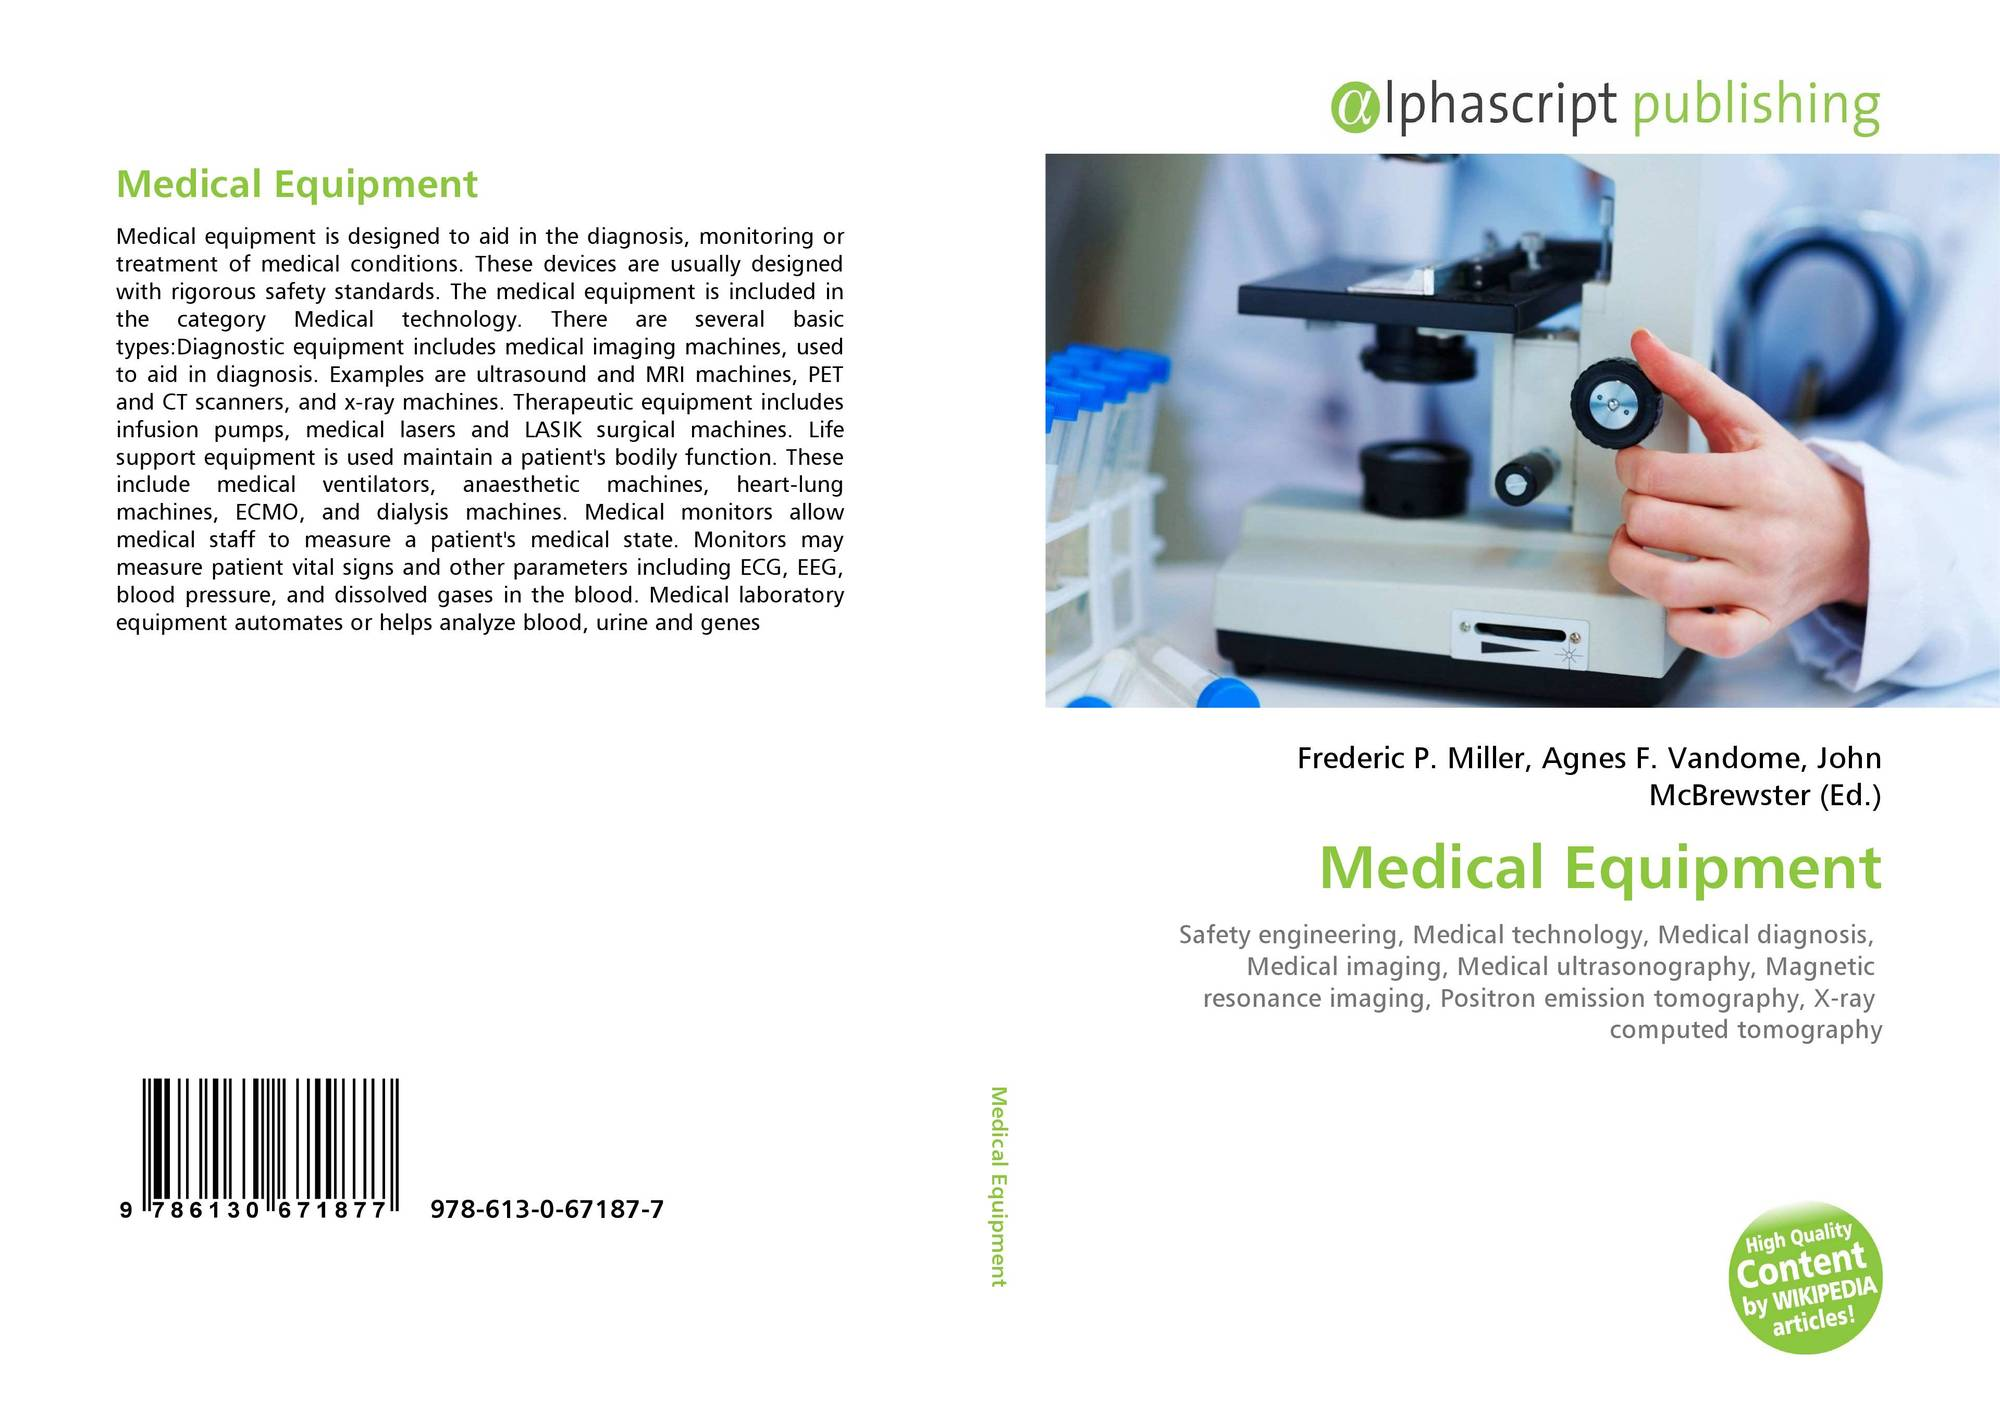 Medical equipment: a selection of articles